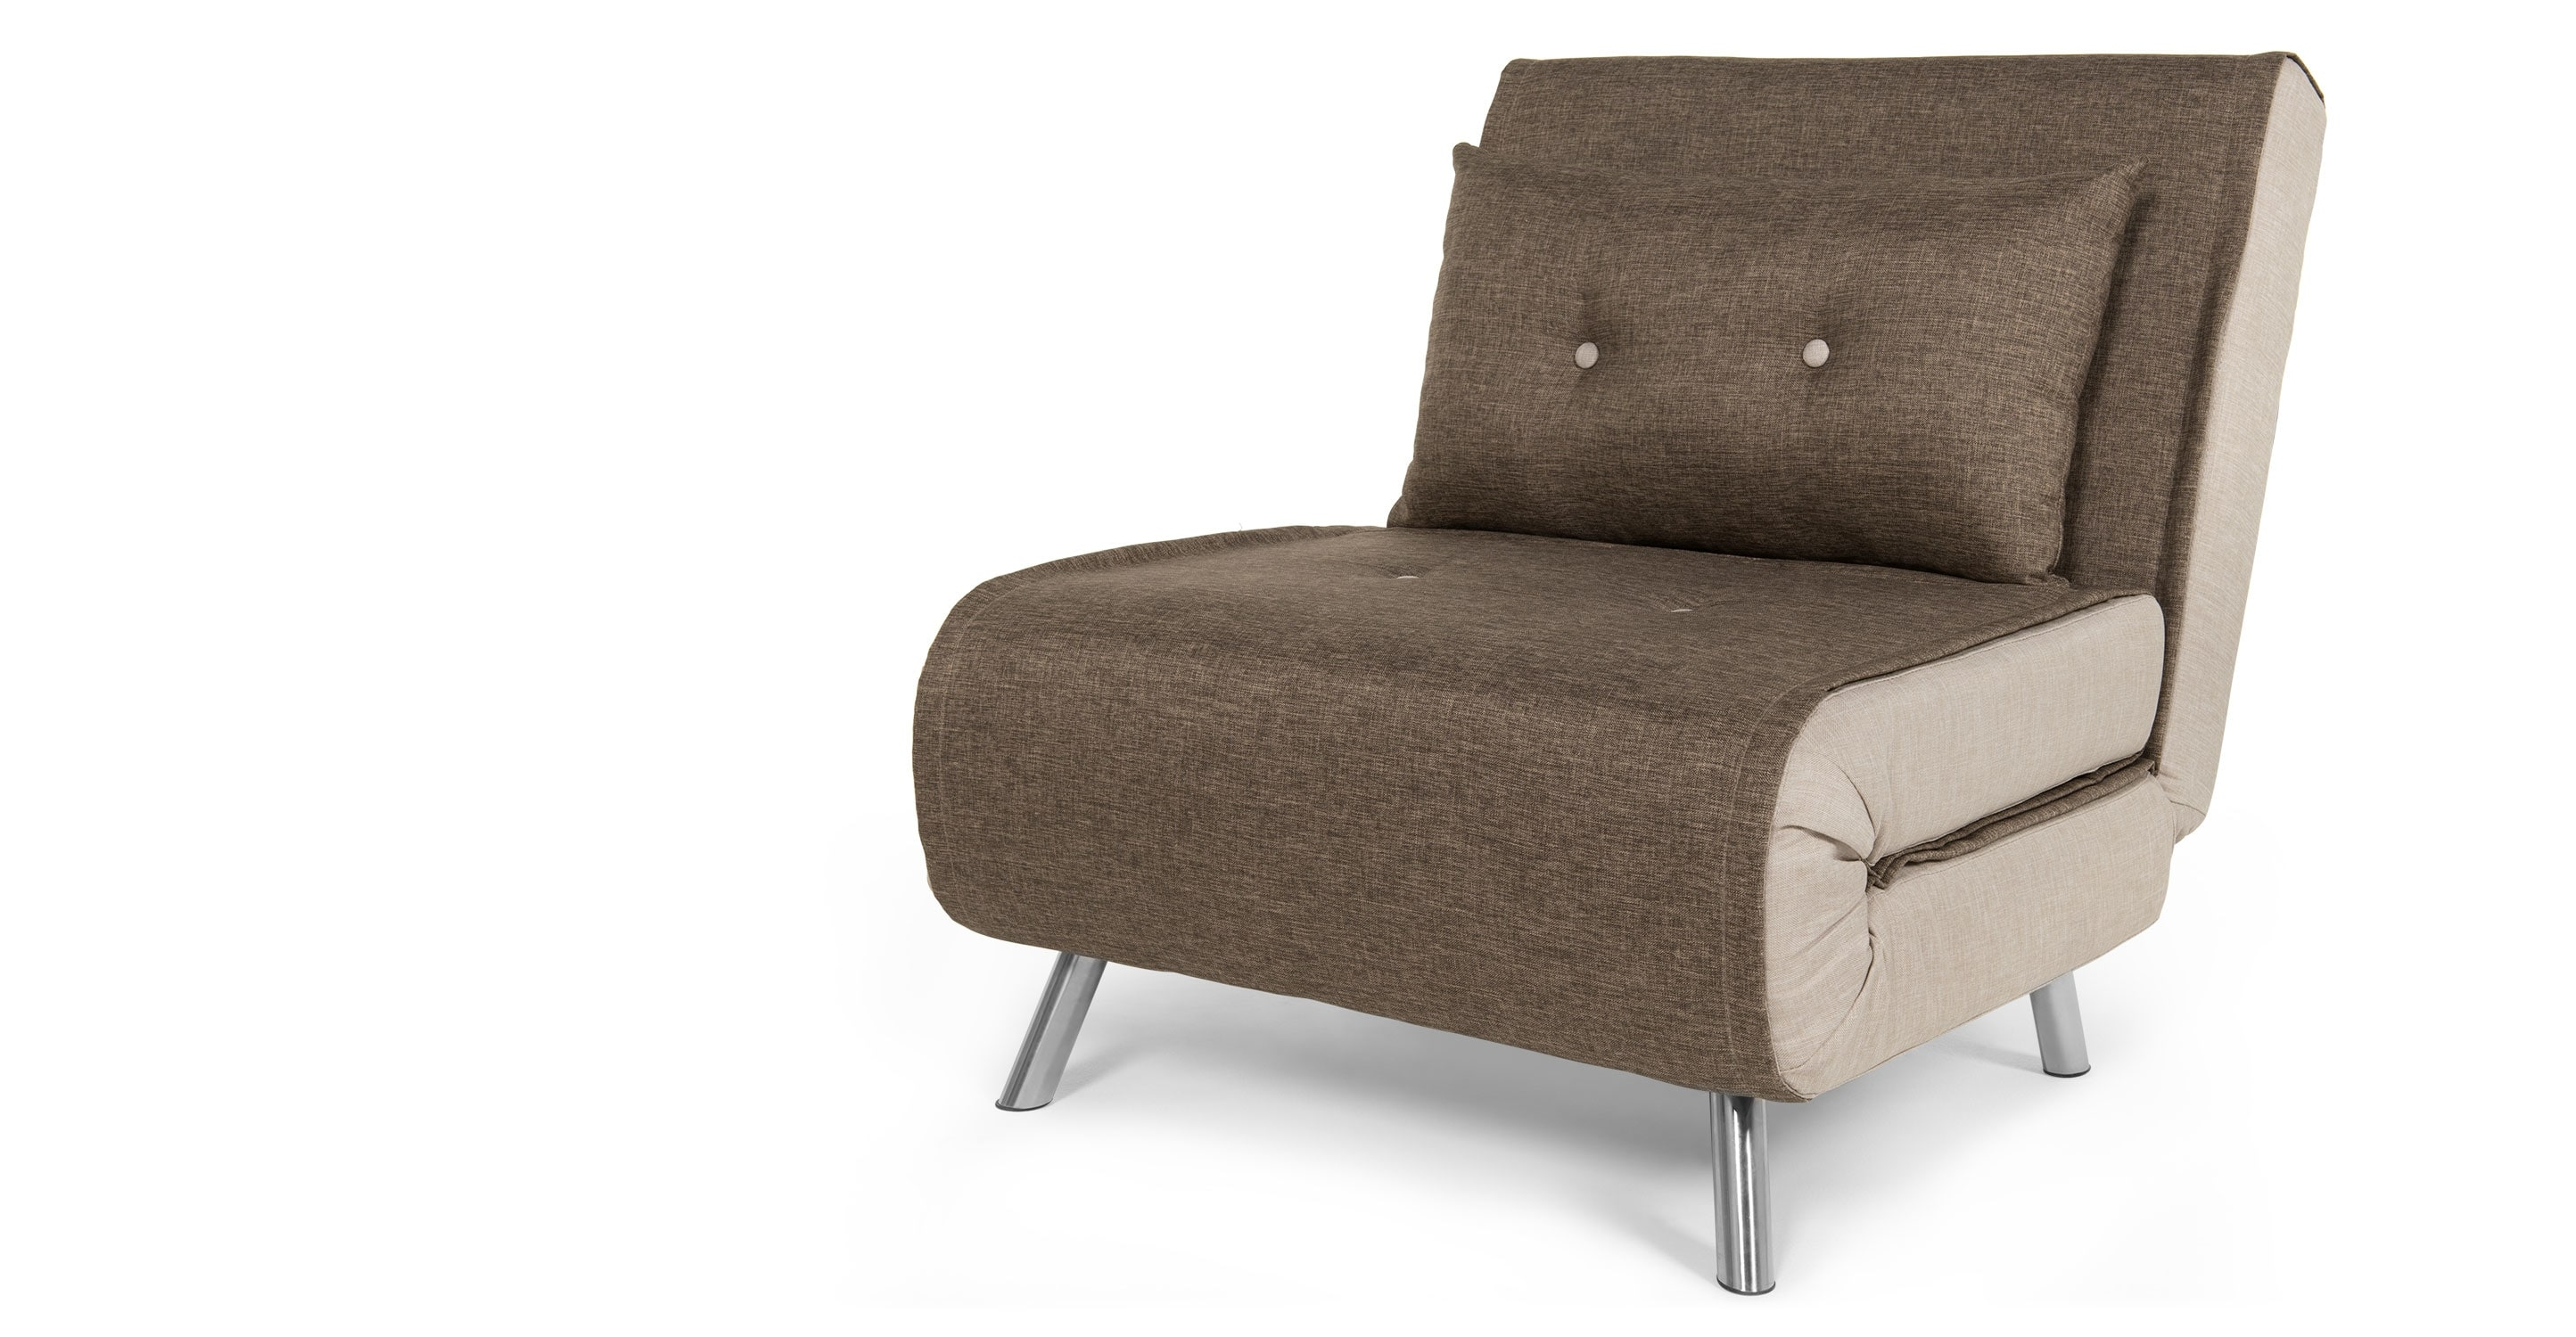 Sofas Center Single Chair Sofa Beds Model Ideas With Memory With Regard To Single Chair Sofa Bed (Image 14 of 15)